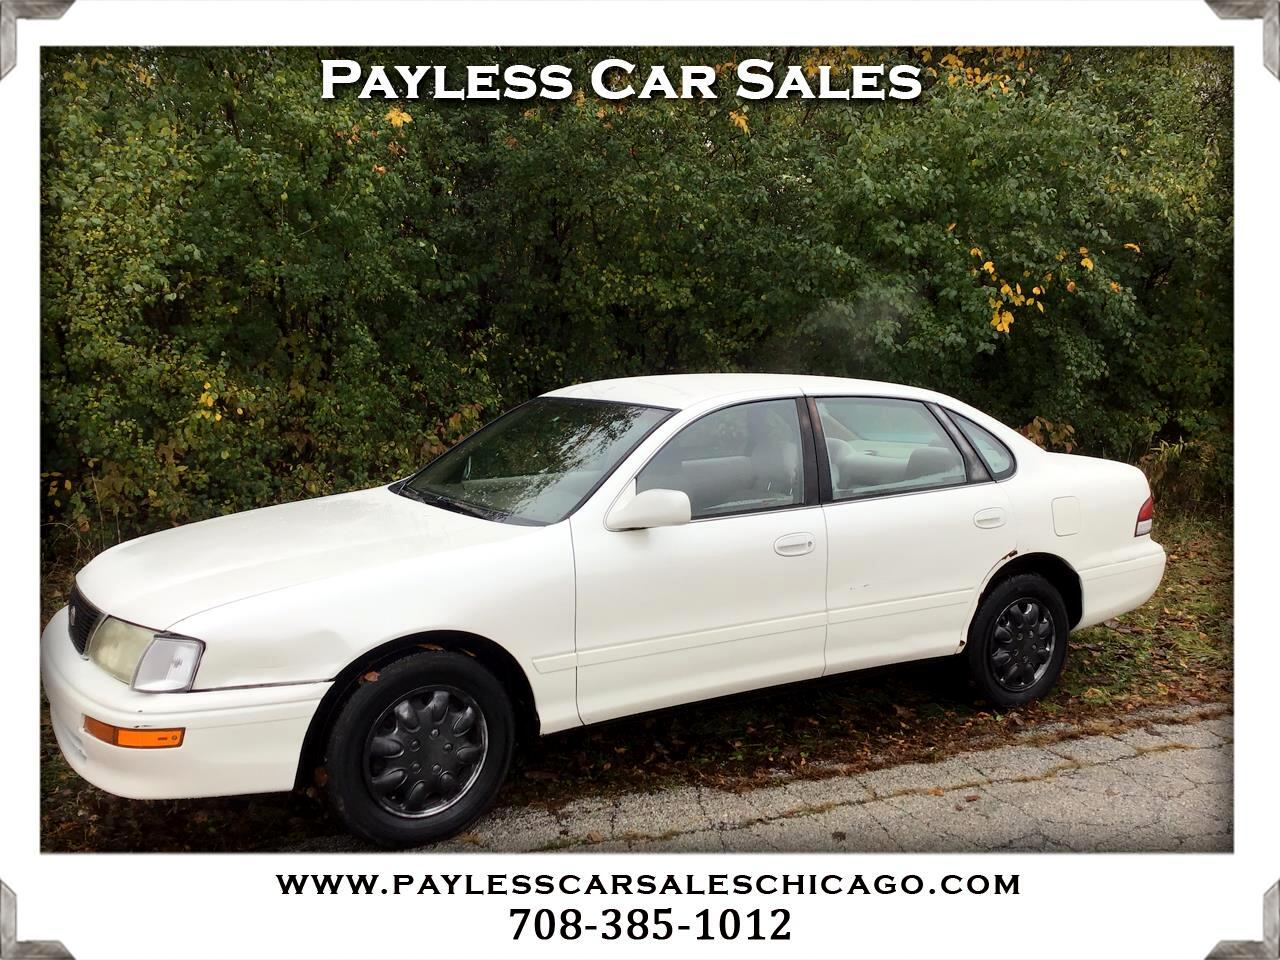 Toyota Avalon 4dr Sdn XLS w/Bucket Seats 1996